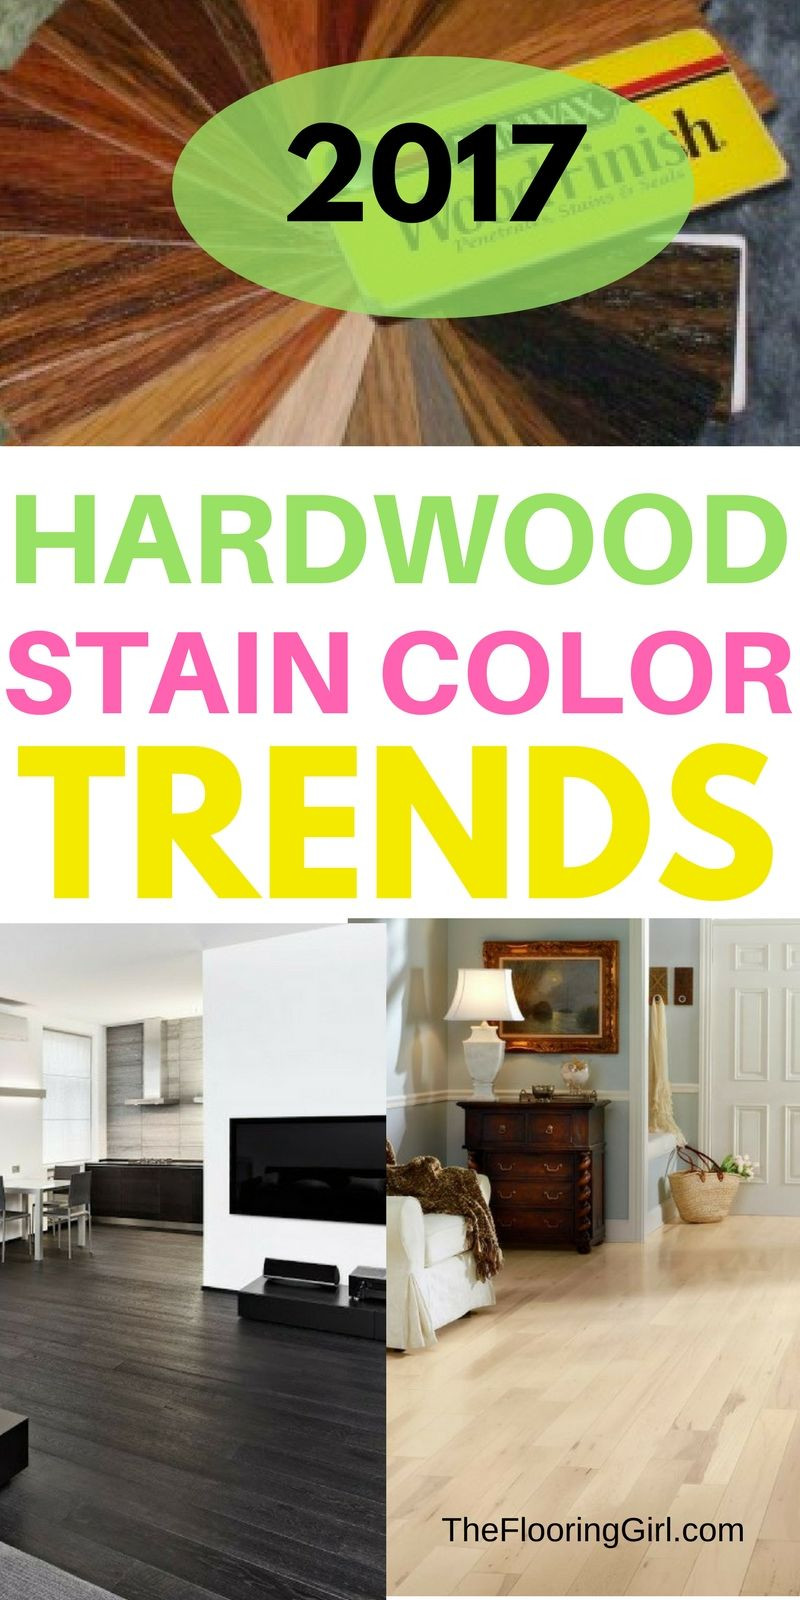 polyurethane drying time hardwood floors of hardwood flooring stain color trends 2018 more from the flooring inside hardwood flooring stain color trends for 2017 hardwood colors that are in style theflooringgirl com